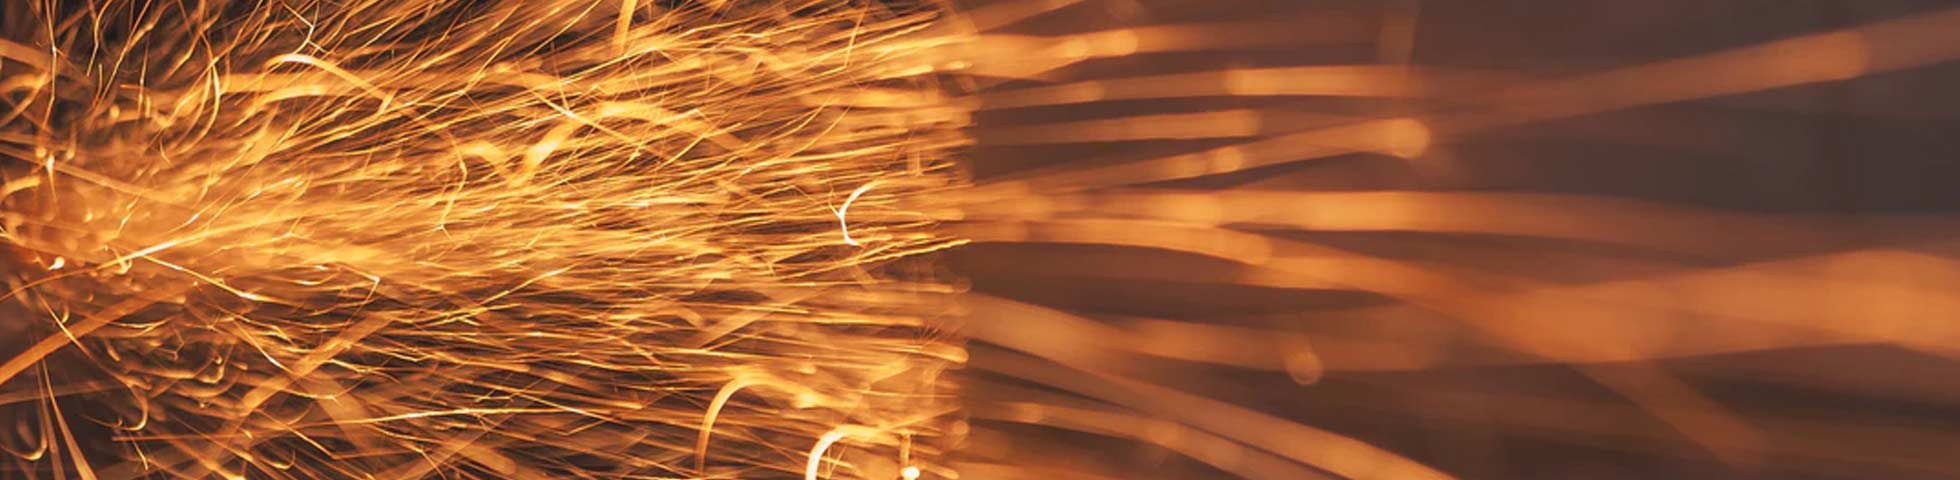 Image of sparks.